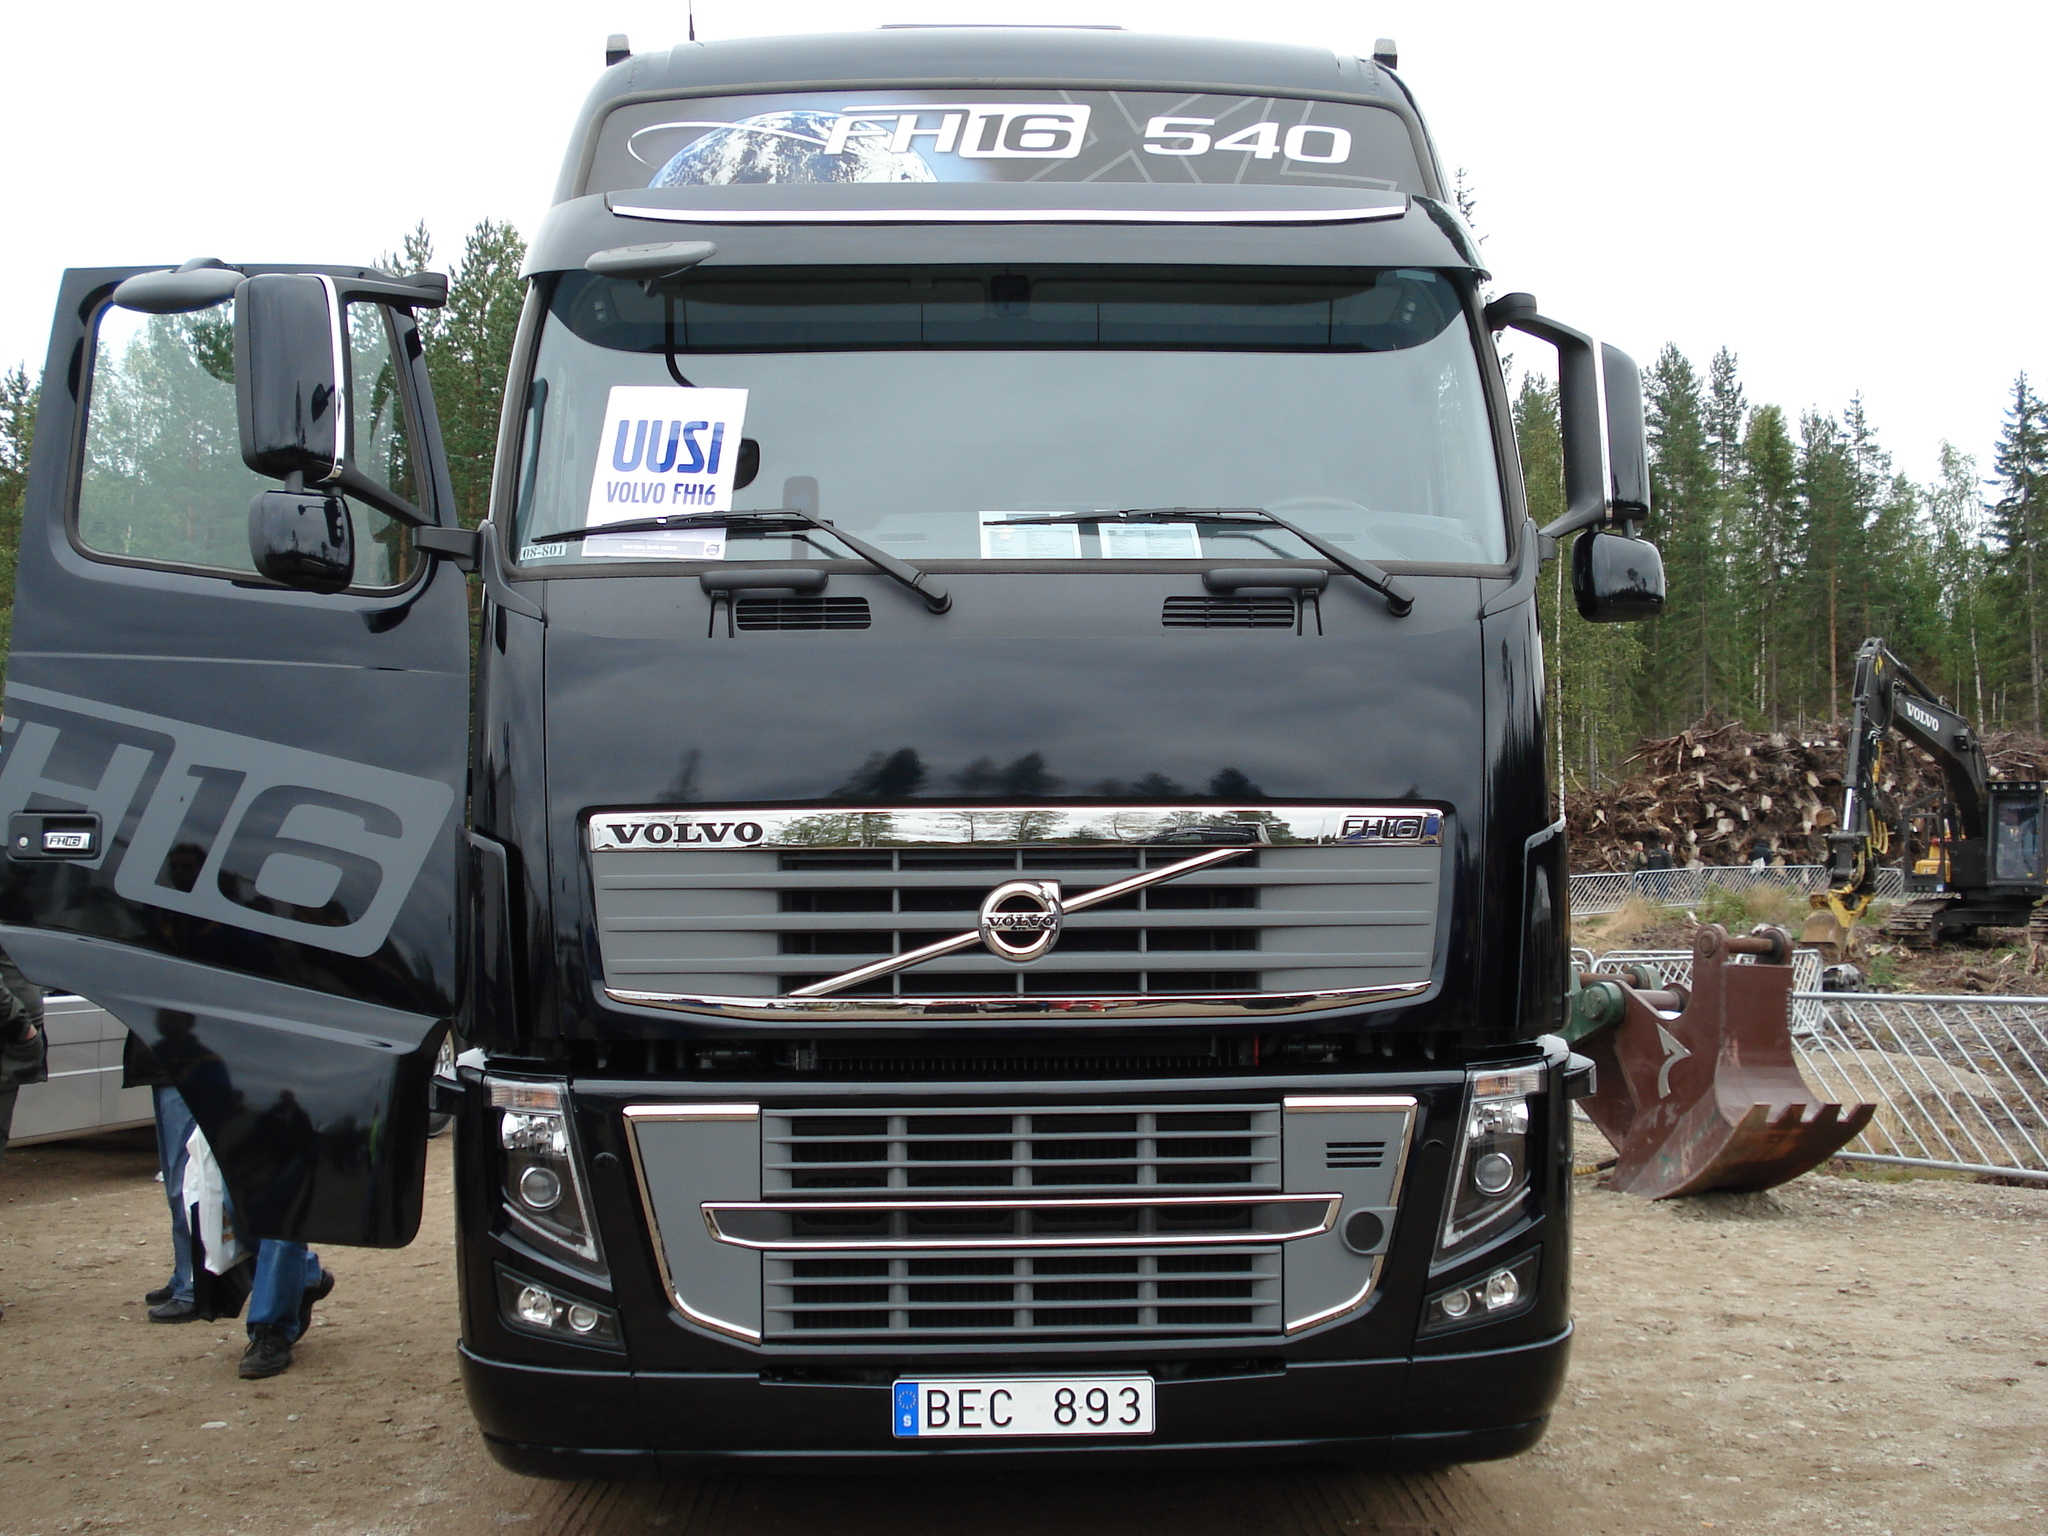 File Volvo Fh16 540 Jpg Wikimedia Commons